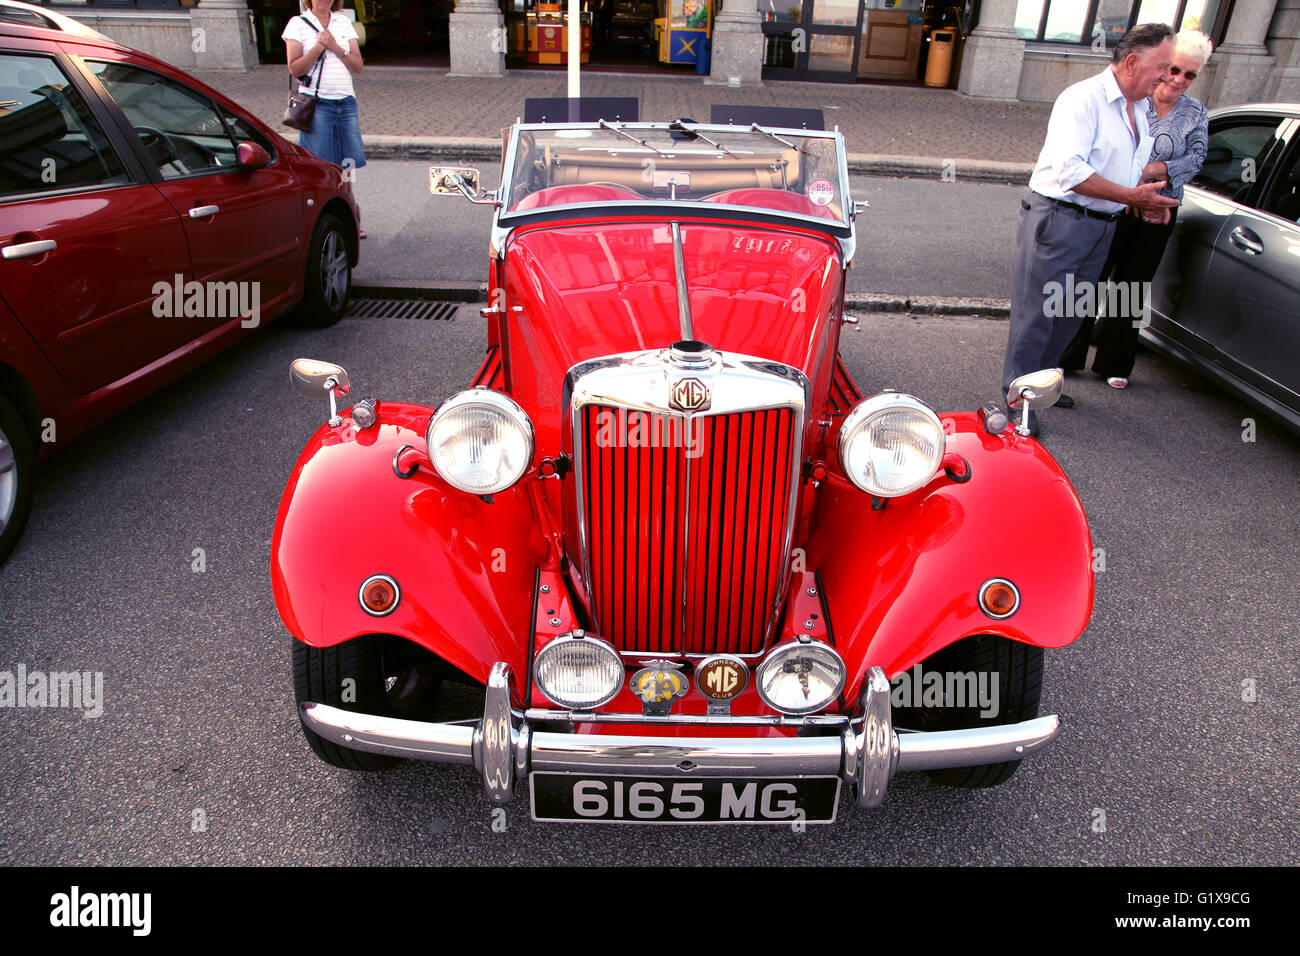 Mg Stock Photos Images Alamy Diagram From Mga 1500 Spl Above 1600 Below British Sports Car Of 1952 Image